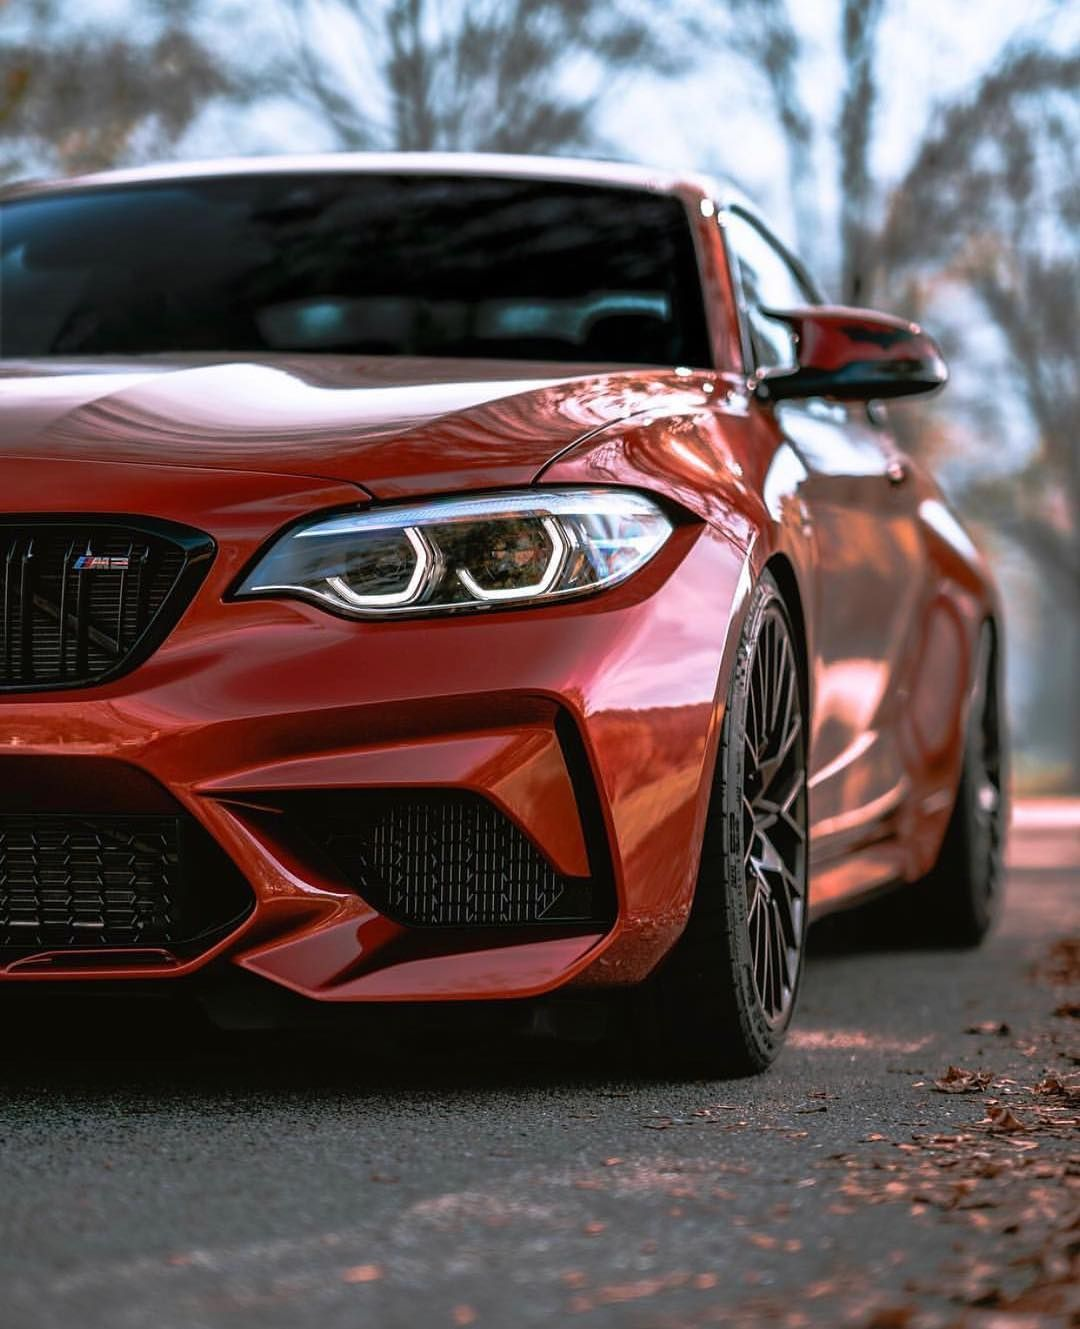 Bmw F87 M2 Competition In Sunset Orange Cars Bmw M2 Sports Cars